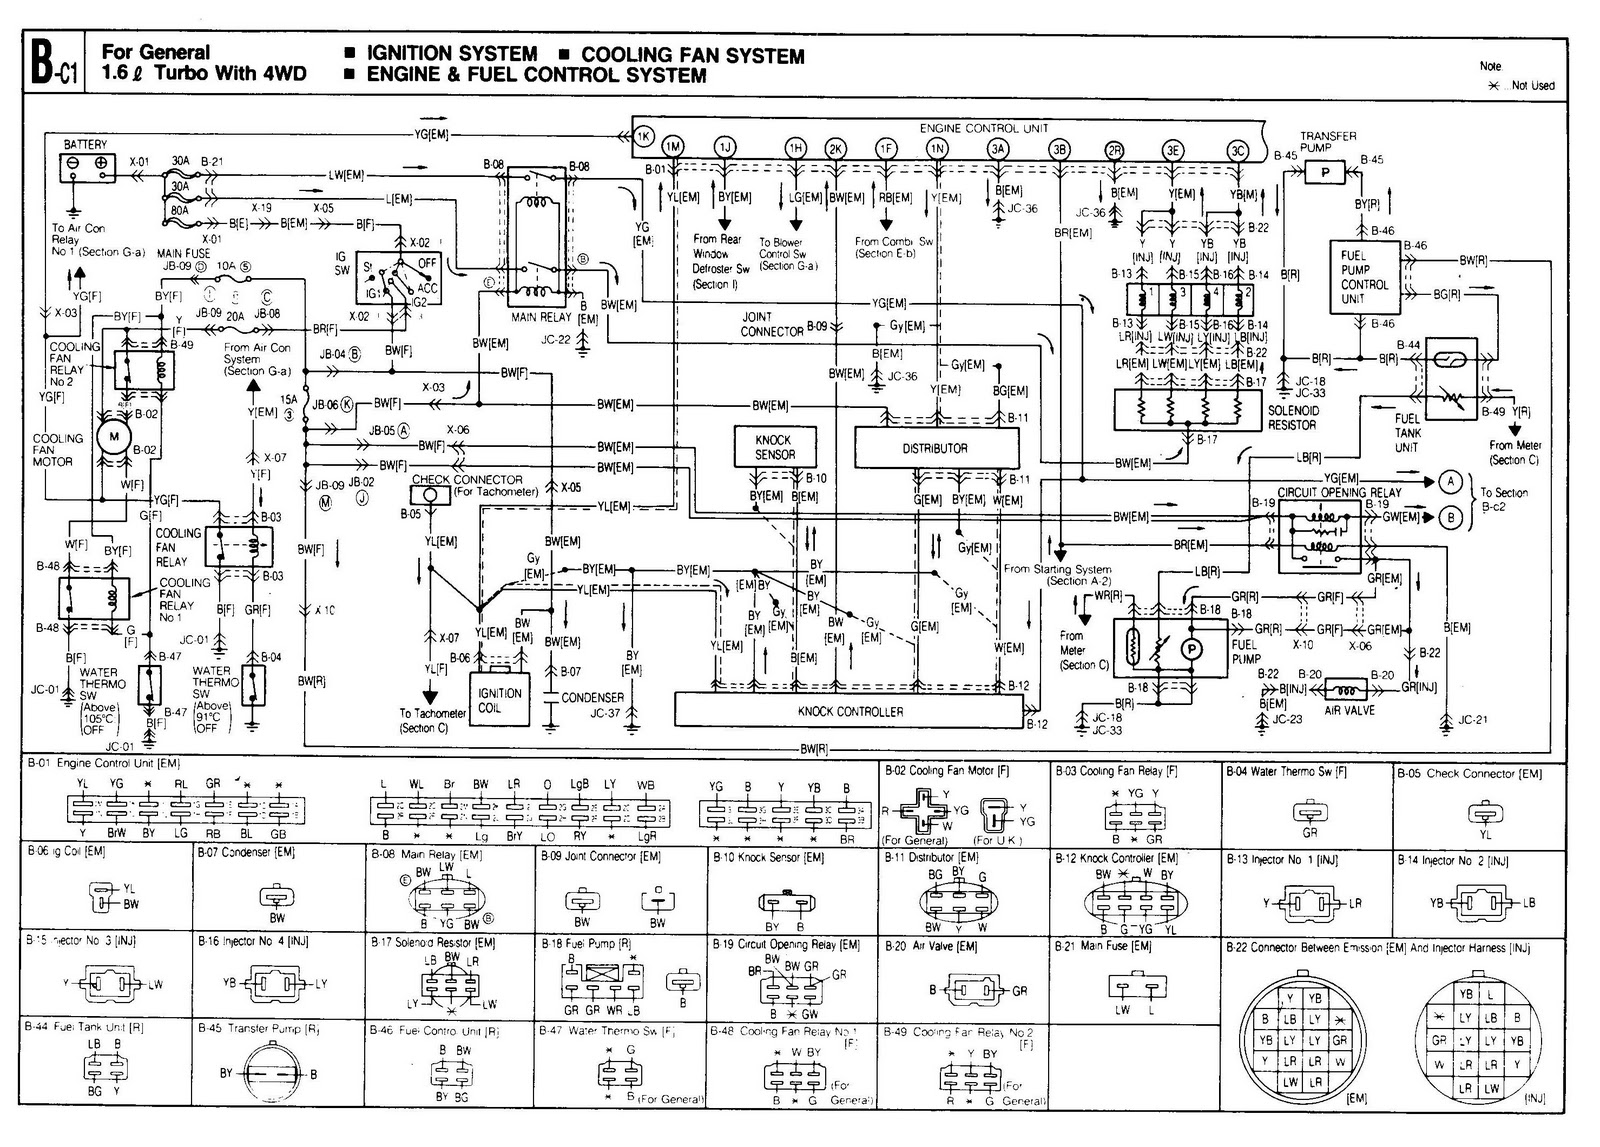 radio wiring diagram for 2006 mazda 3 with Mazda Understanding Wiring Diagram on 99 Ford Expedition Ac Electrical Diagram besides Dpfe Sensor Location 2001 Ford F150 besides Dodge Intrepid Wiring Diagram For Cooling Fans as well Where Flasher F150 2005 A 12353 furthermore Mazda Understanding Wiring Diagram.